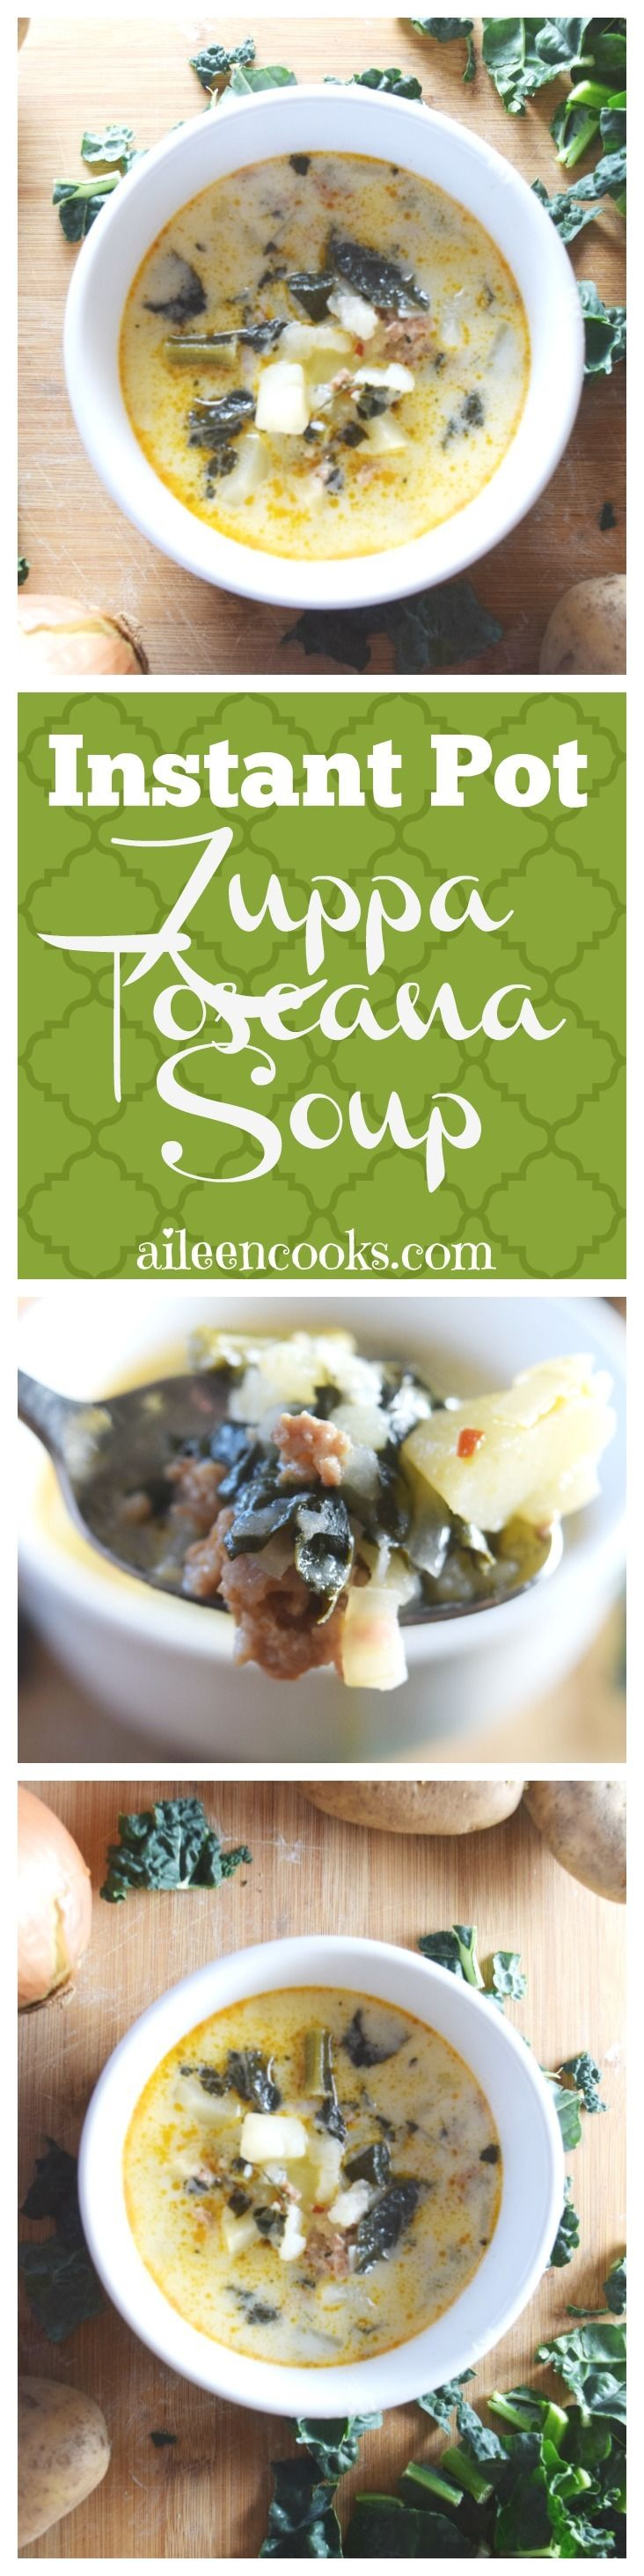 Make this delicious and hearty instant pot zuppa toscana soup at home! This recipe makes a large batch that tastes wonderful the next day. It's filled with hot Italian sausage, kale, hearty potatoes, garlic, and onion.This recipe includes slow cooker instructions, too! via @aileencooks